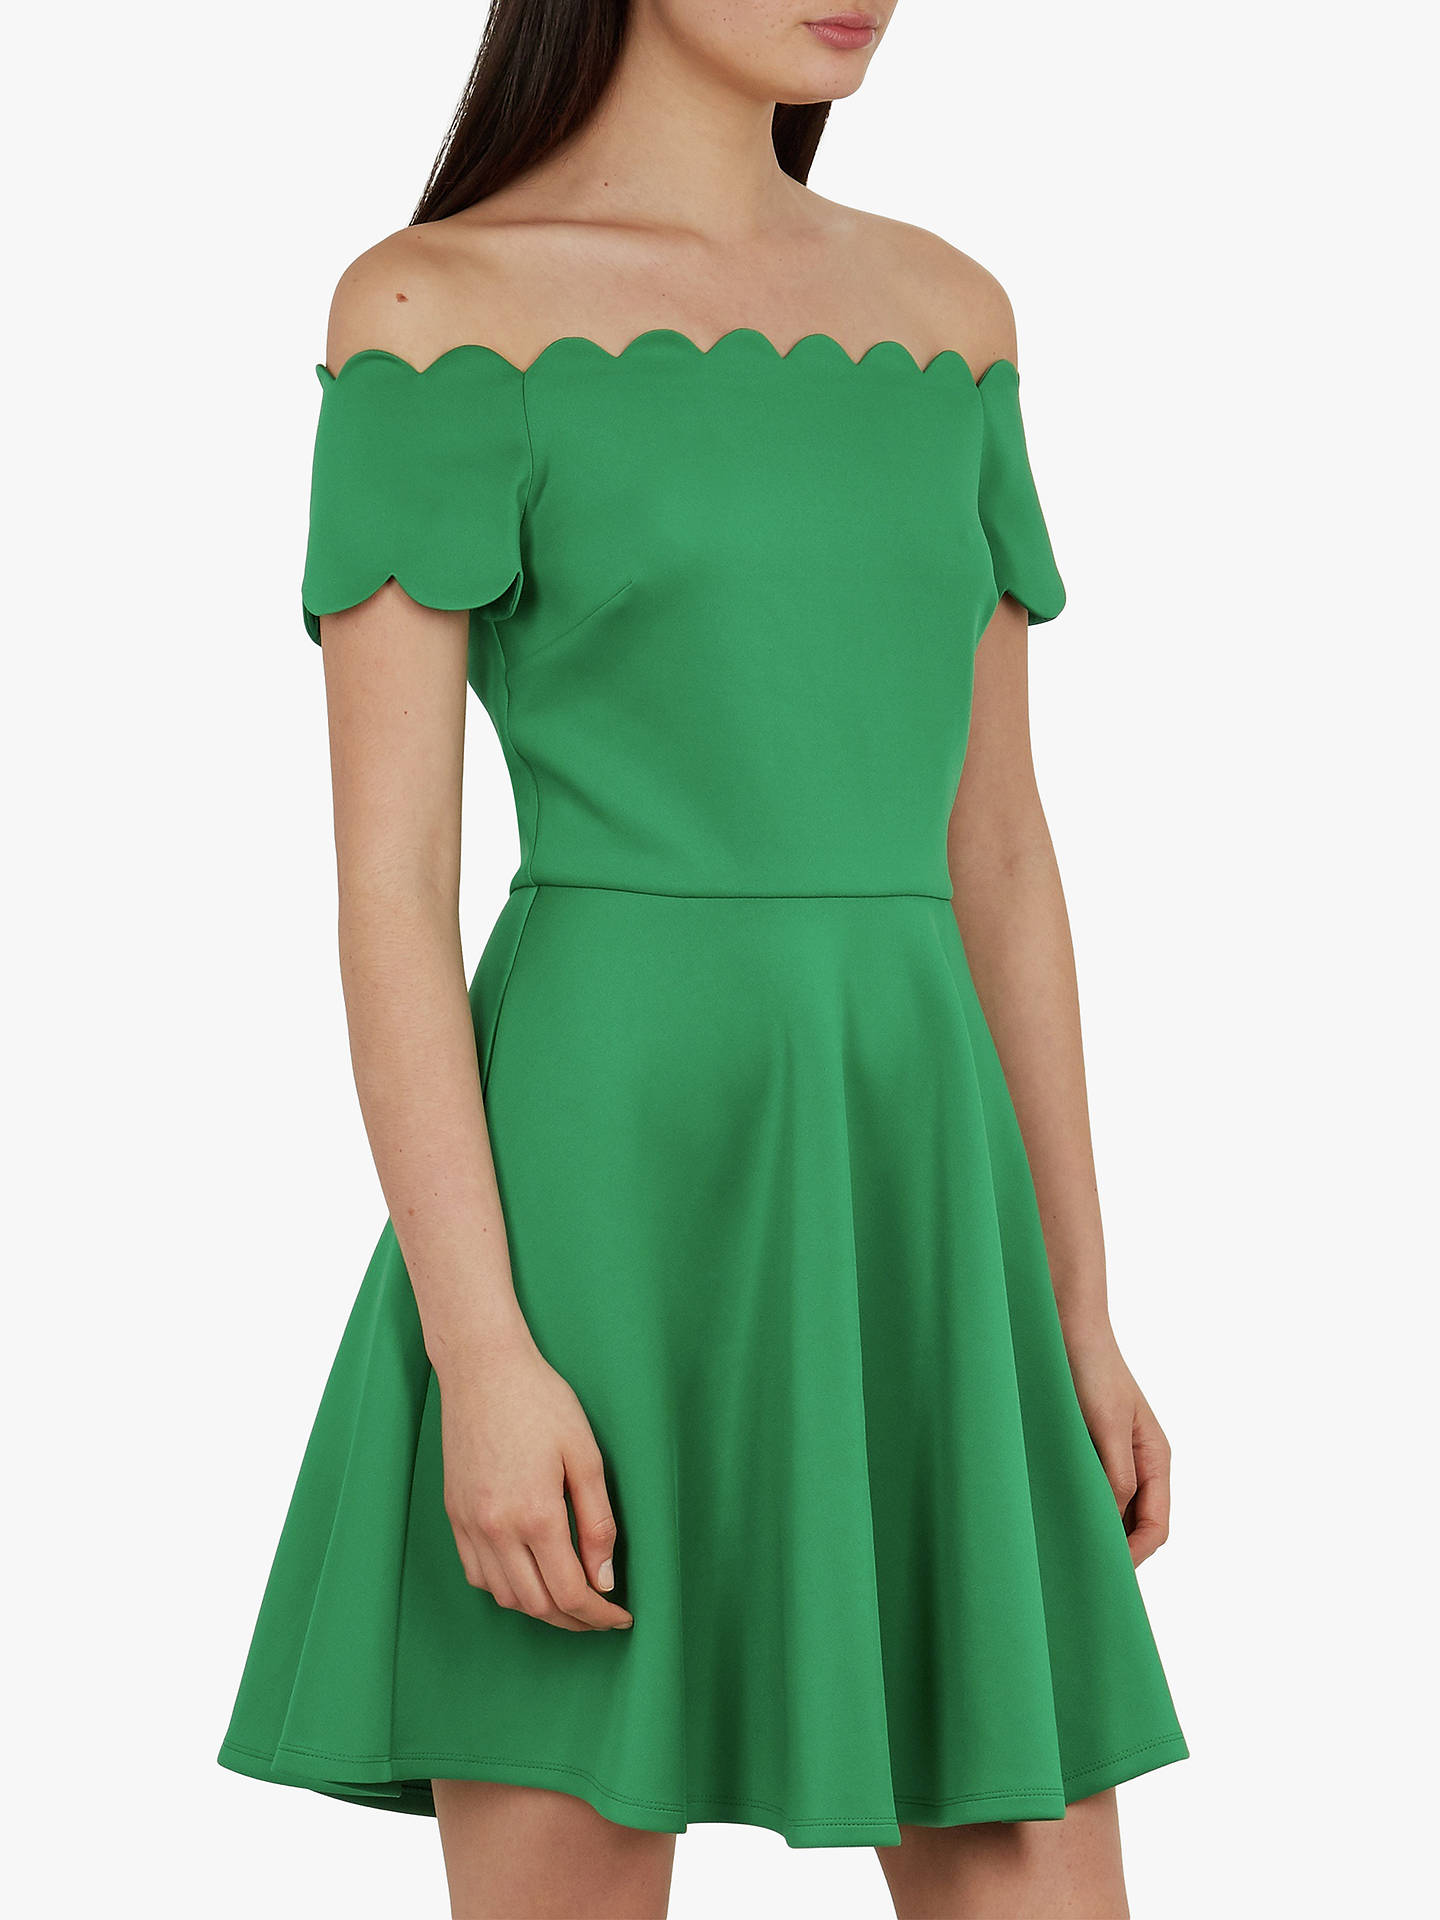 521cb4fa6274 Buy Ted Baker Fellama Scalloped Bardot Skater Dress